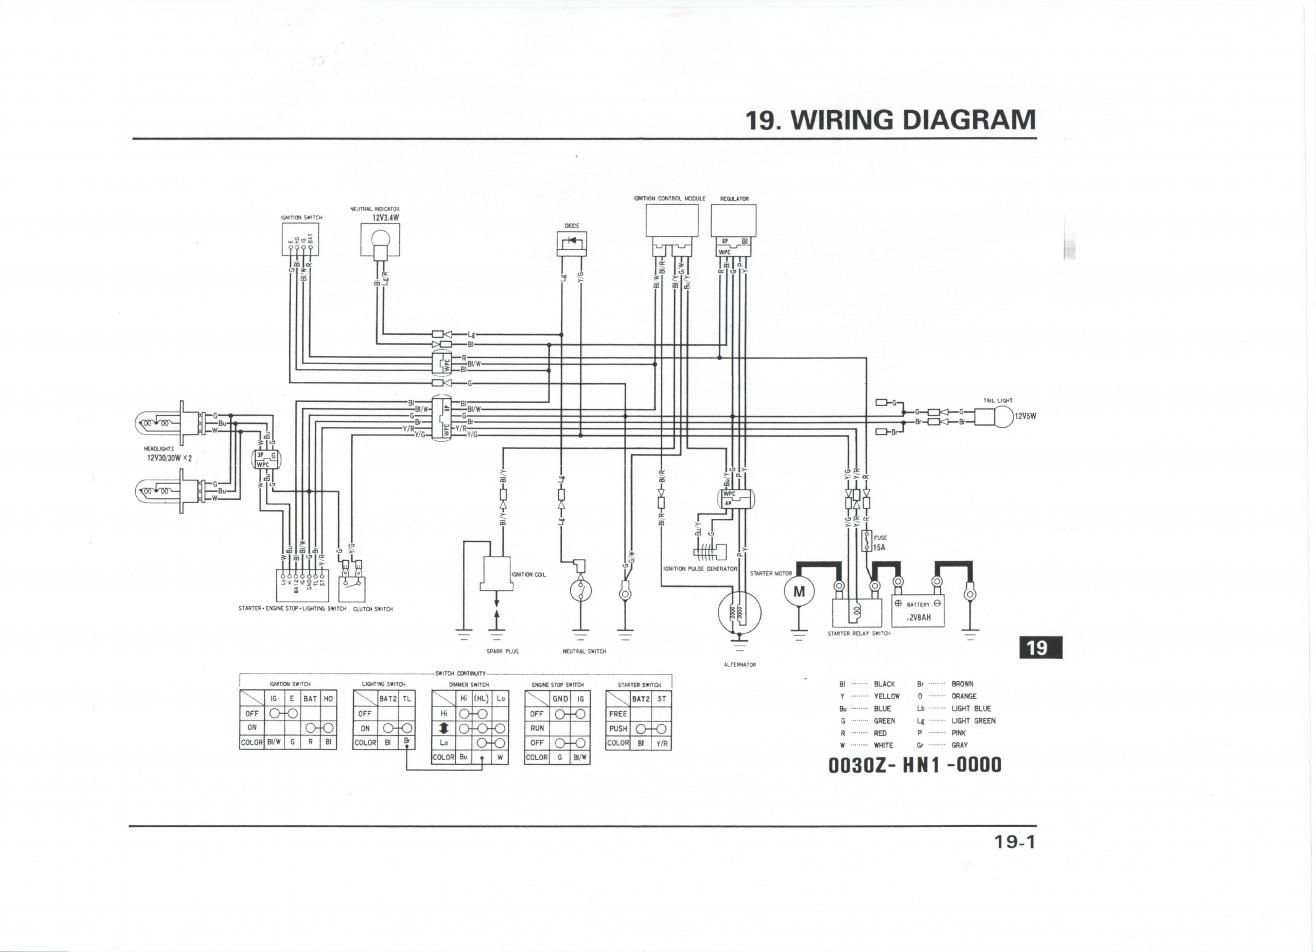 small resolution of 99 honda fourtrax 300 wiring diagram free picture wiring diagramtrx300ex wiring diagram automotive wiring diagrams 1986